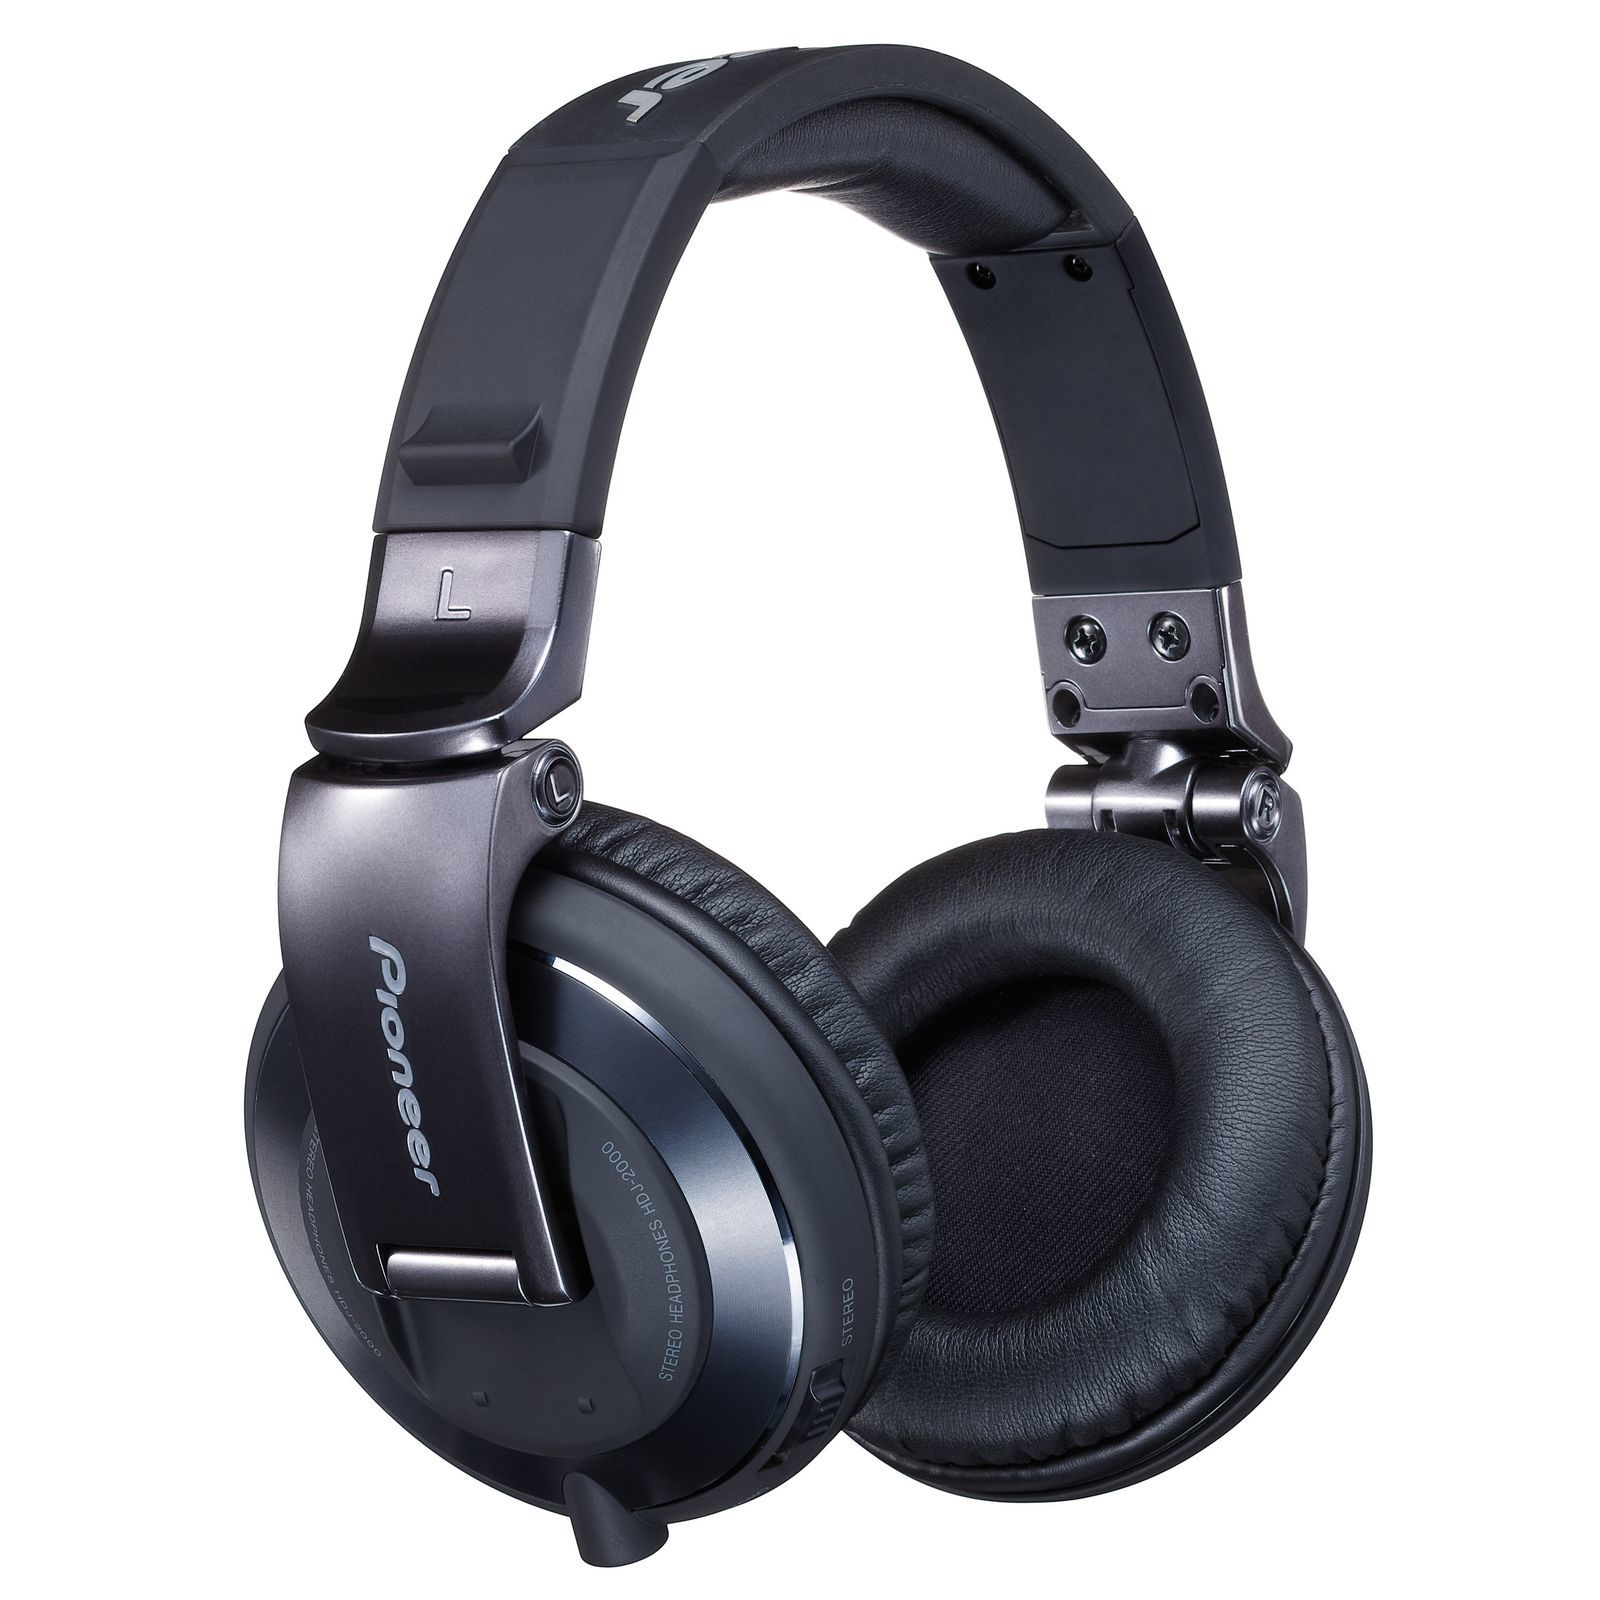 Pioneer HDJ-2000-K High-End DJ Headphones, Black Product Image